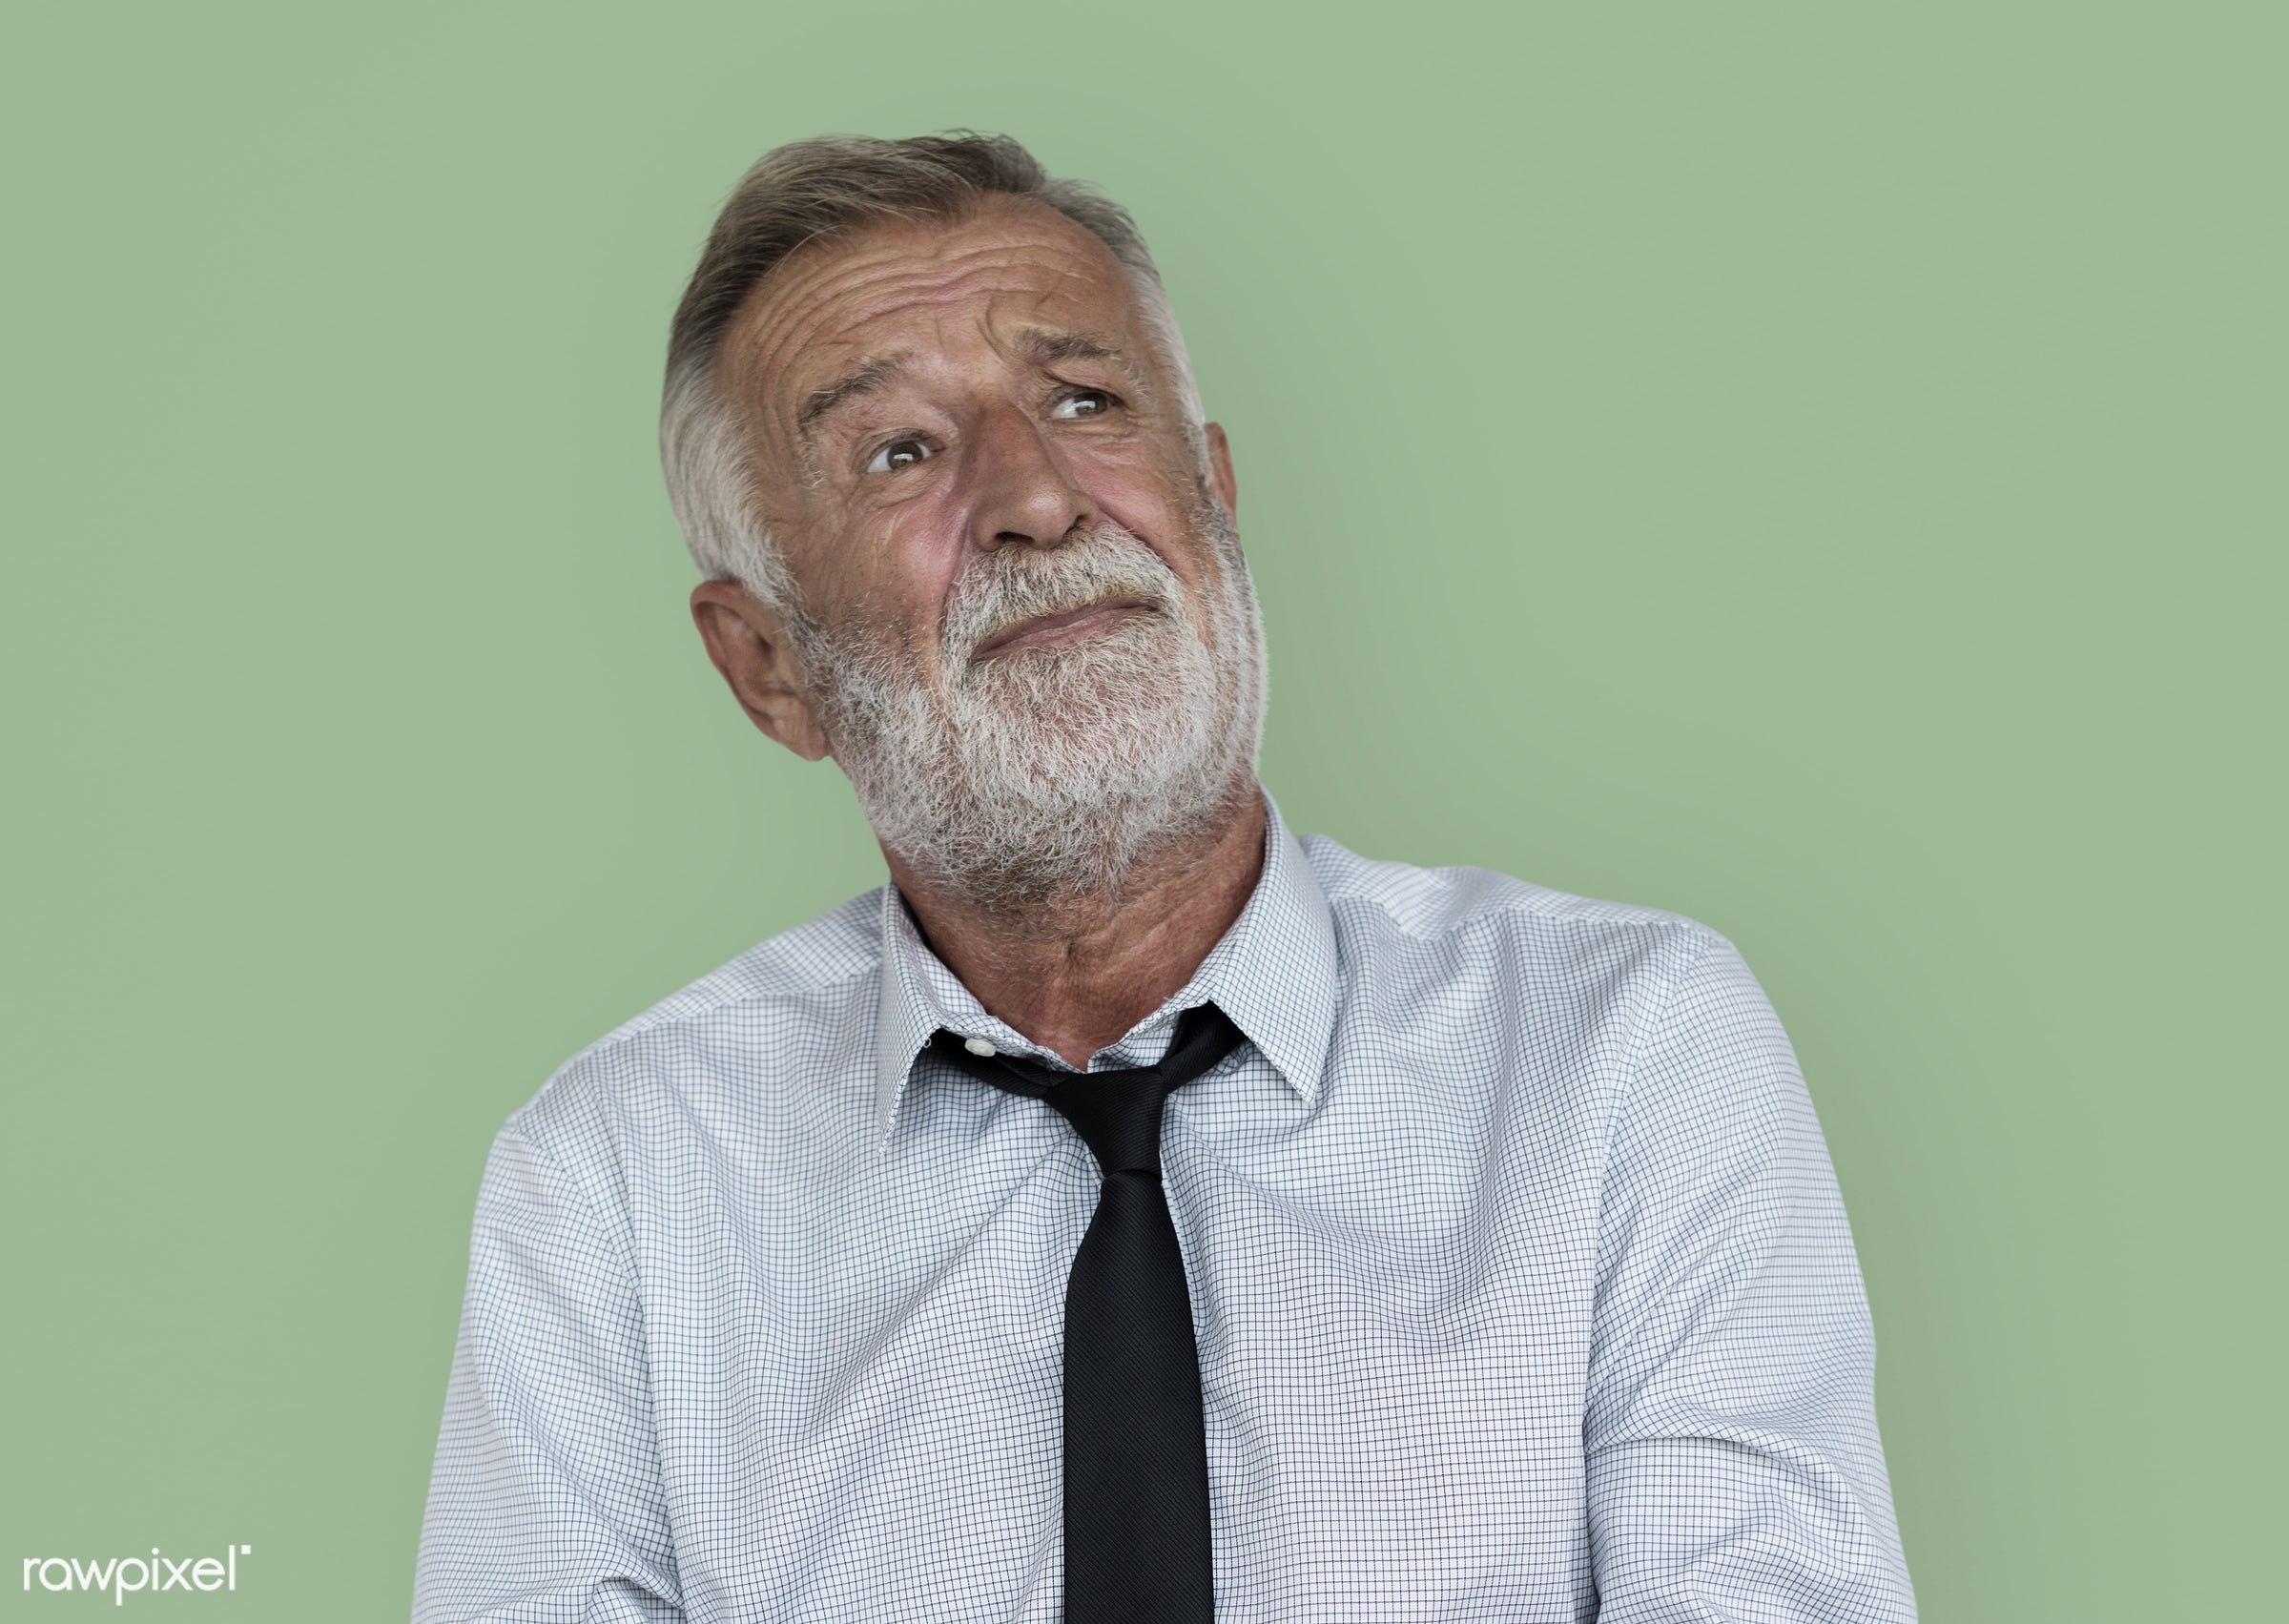 expression, intelligent, studio, pastel, person, people, caucasian, serious, isolated, earth tones, portrait, grey hair,...